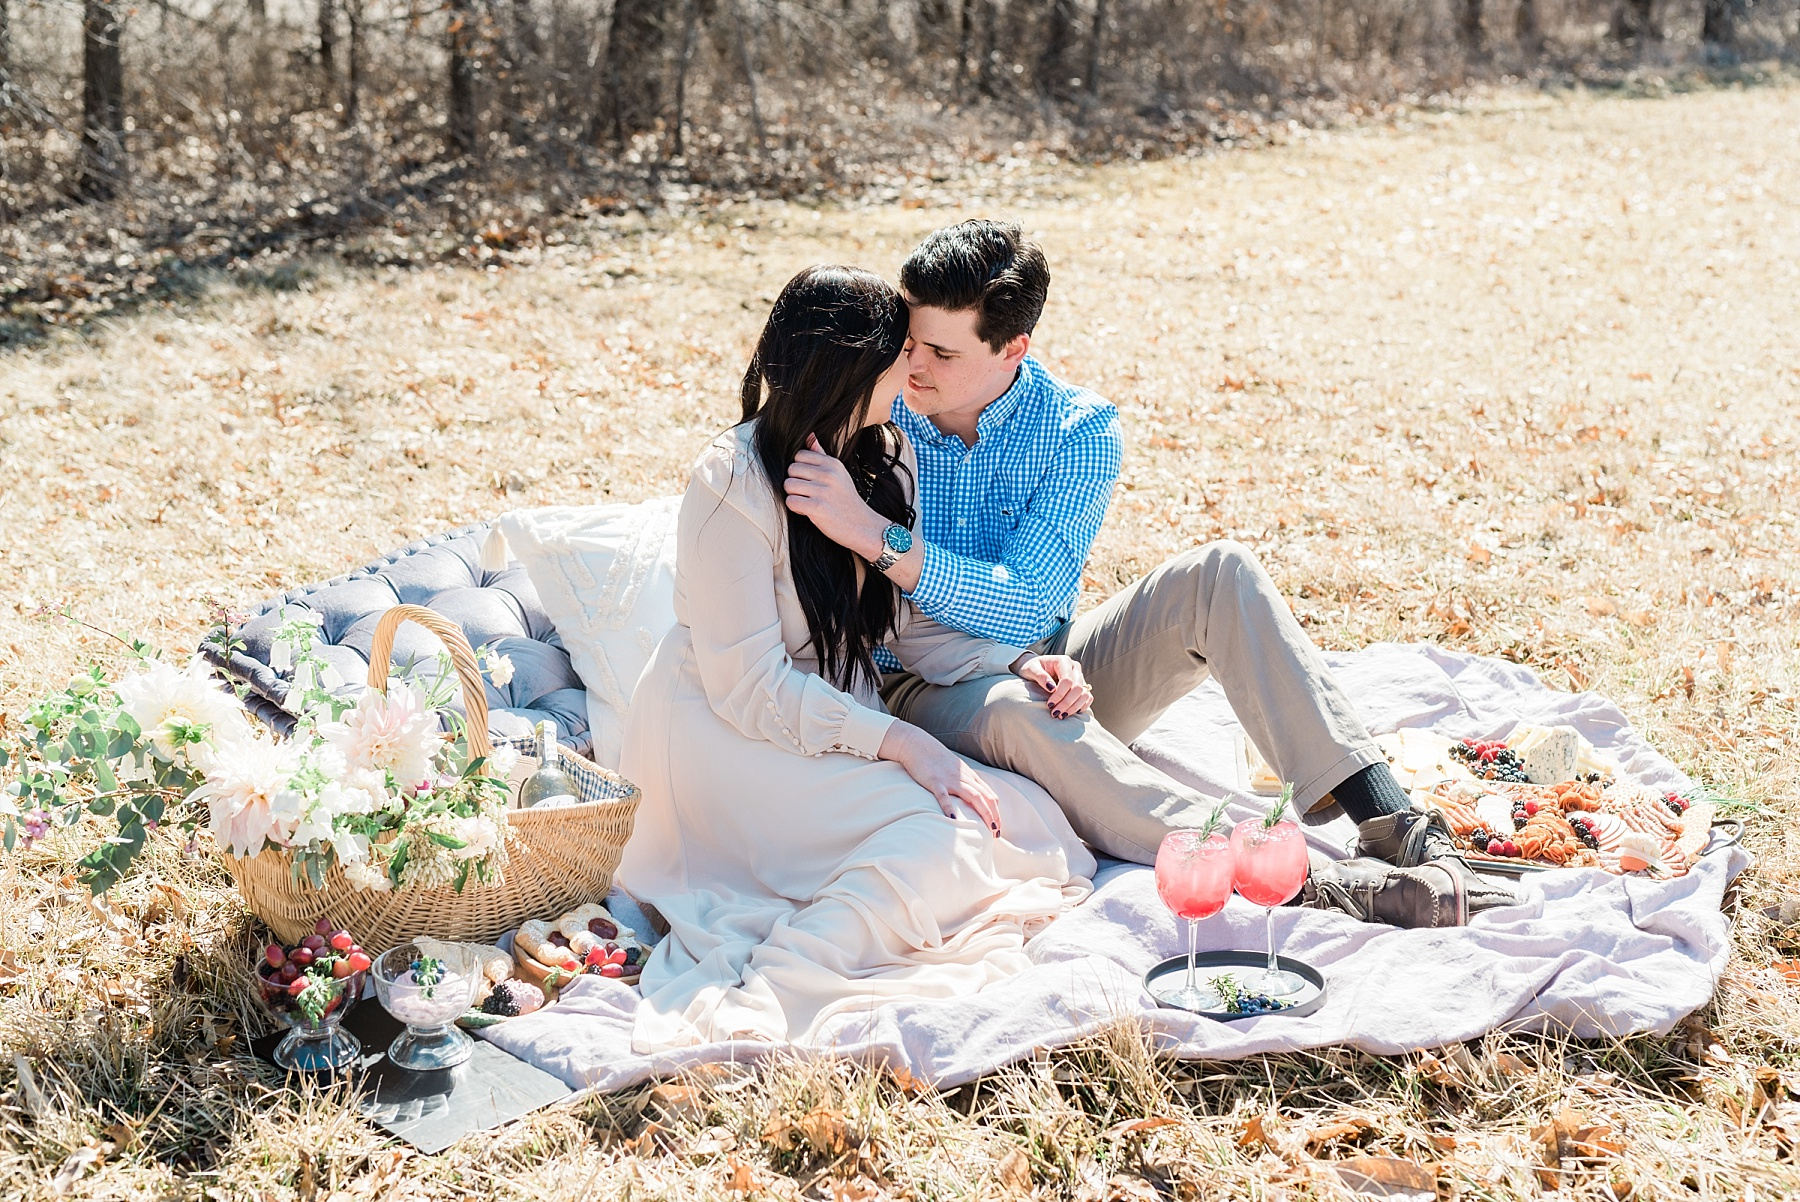 Late Fall Farm-to-table Inspired Brunch Picnic Engagement Session During Wedding Weekend by Kelsi Kliethermes Photography Best Missouri and Maui Wedding Photographer_0013.jpg